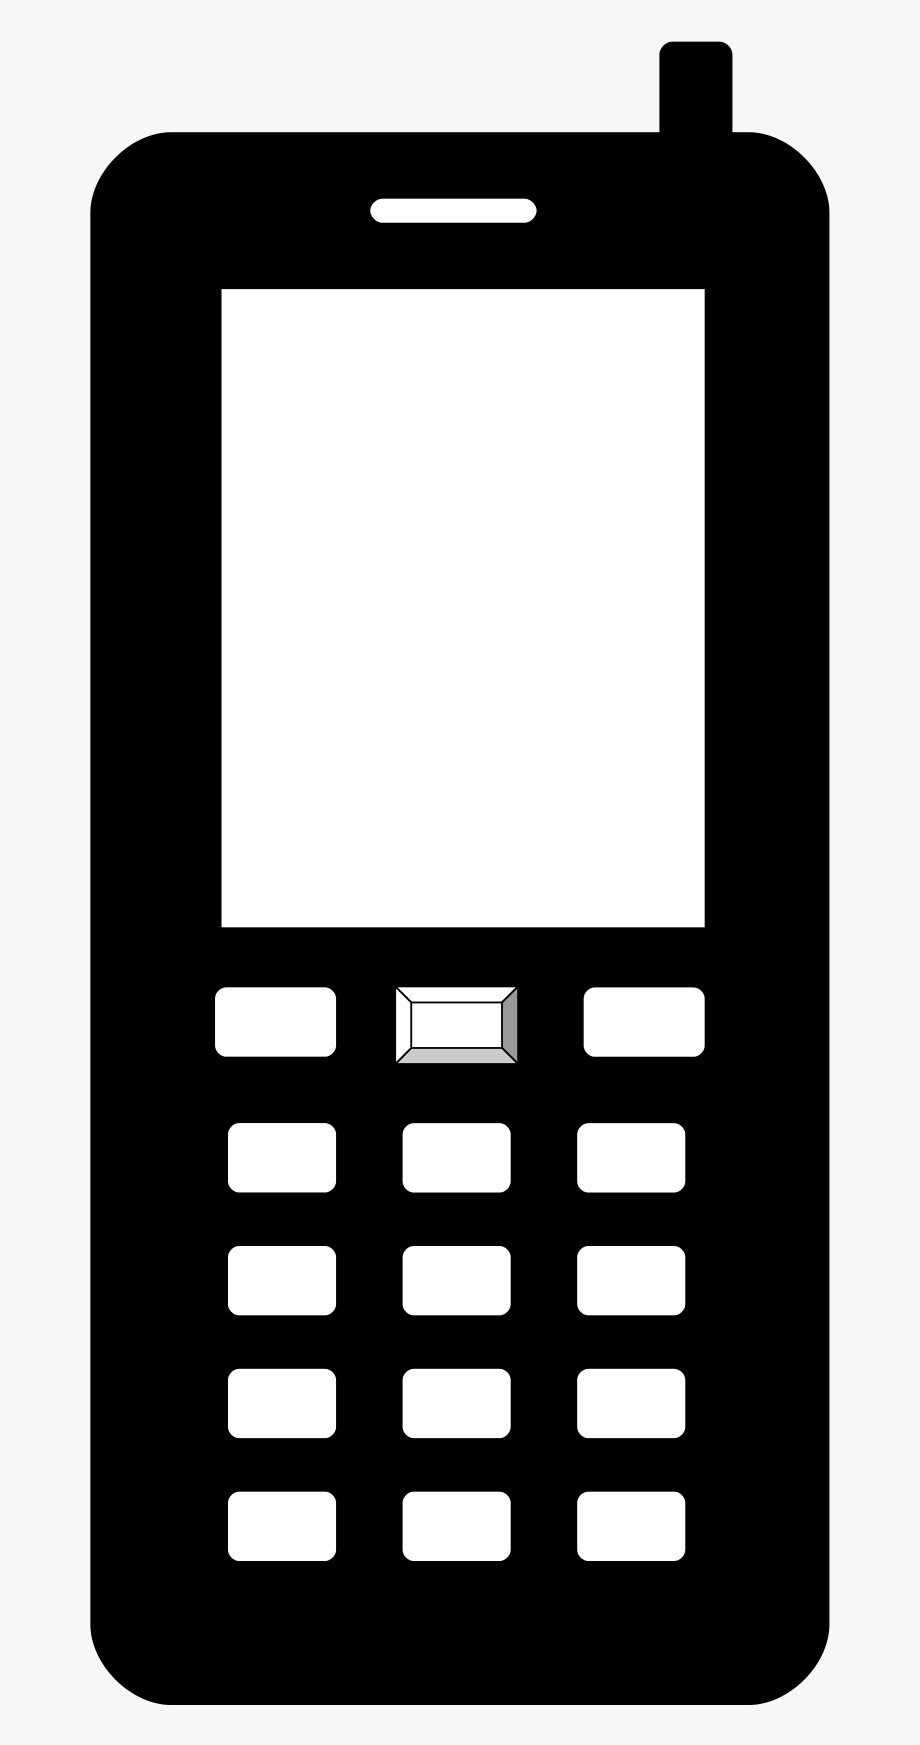 Cellphone clipart mobile sign. Cell phone symbol png